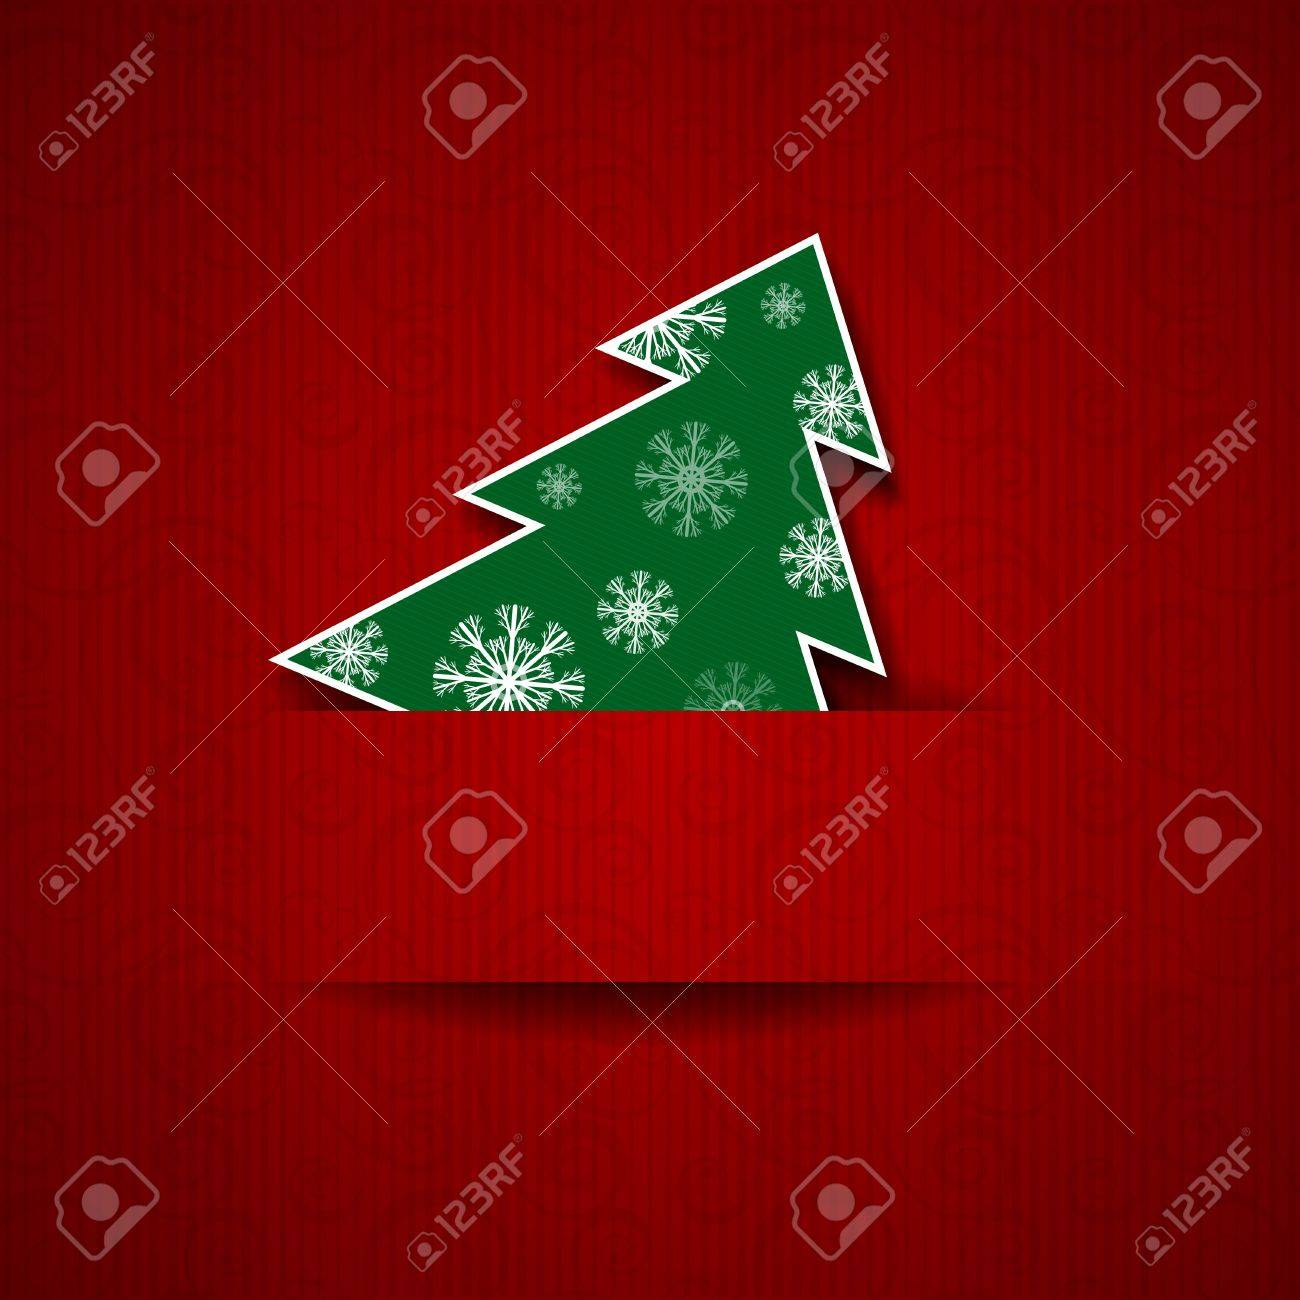 Vector illustration Paper red background with Christmas tree - 16061608